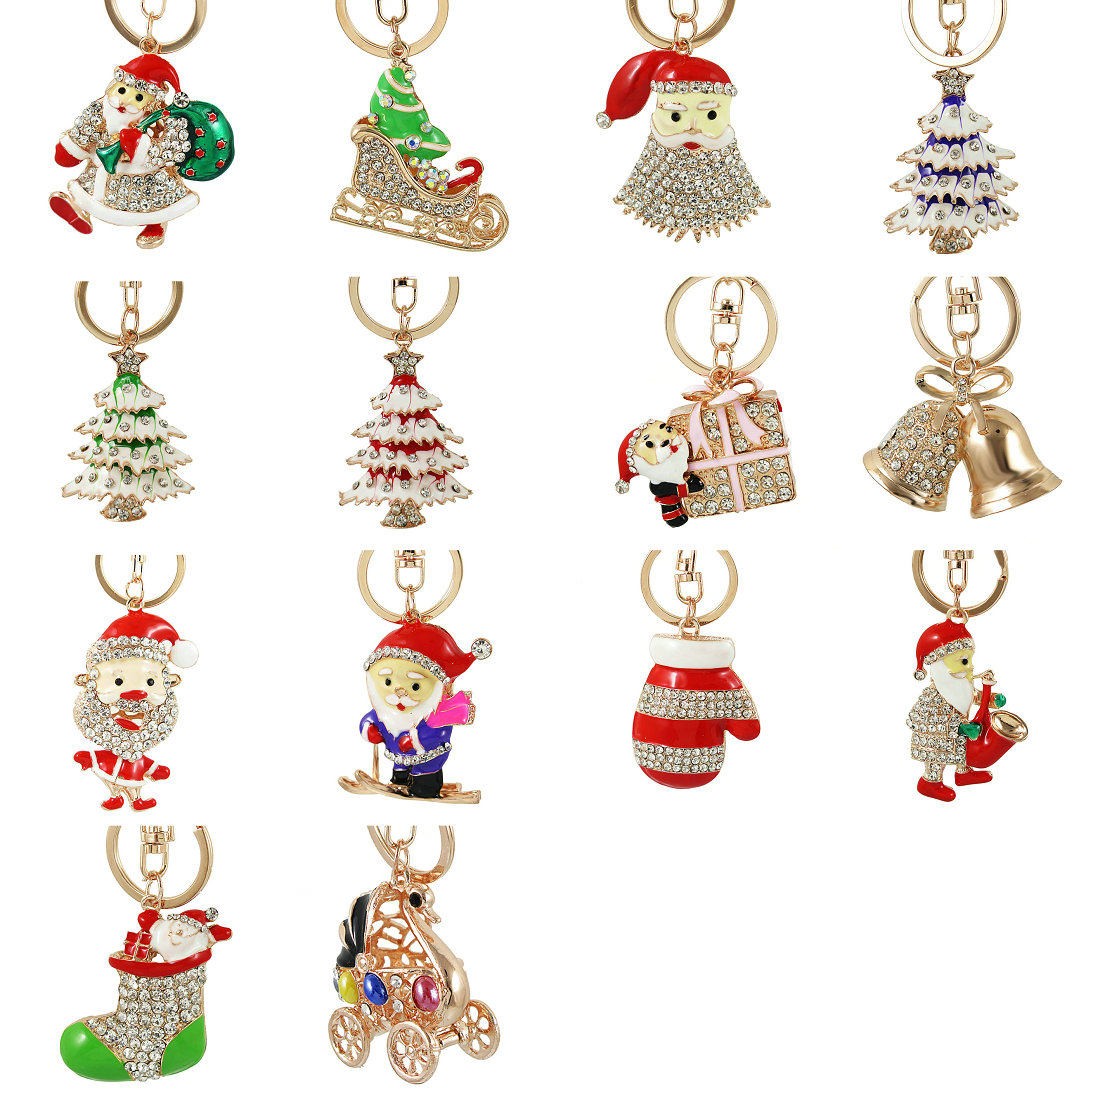 Enamel Christmas Tree boots Santa Claus Keyrings Red Star Crystal Key Holder Chains Purse Bag Pendant For Car Keychains Gift